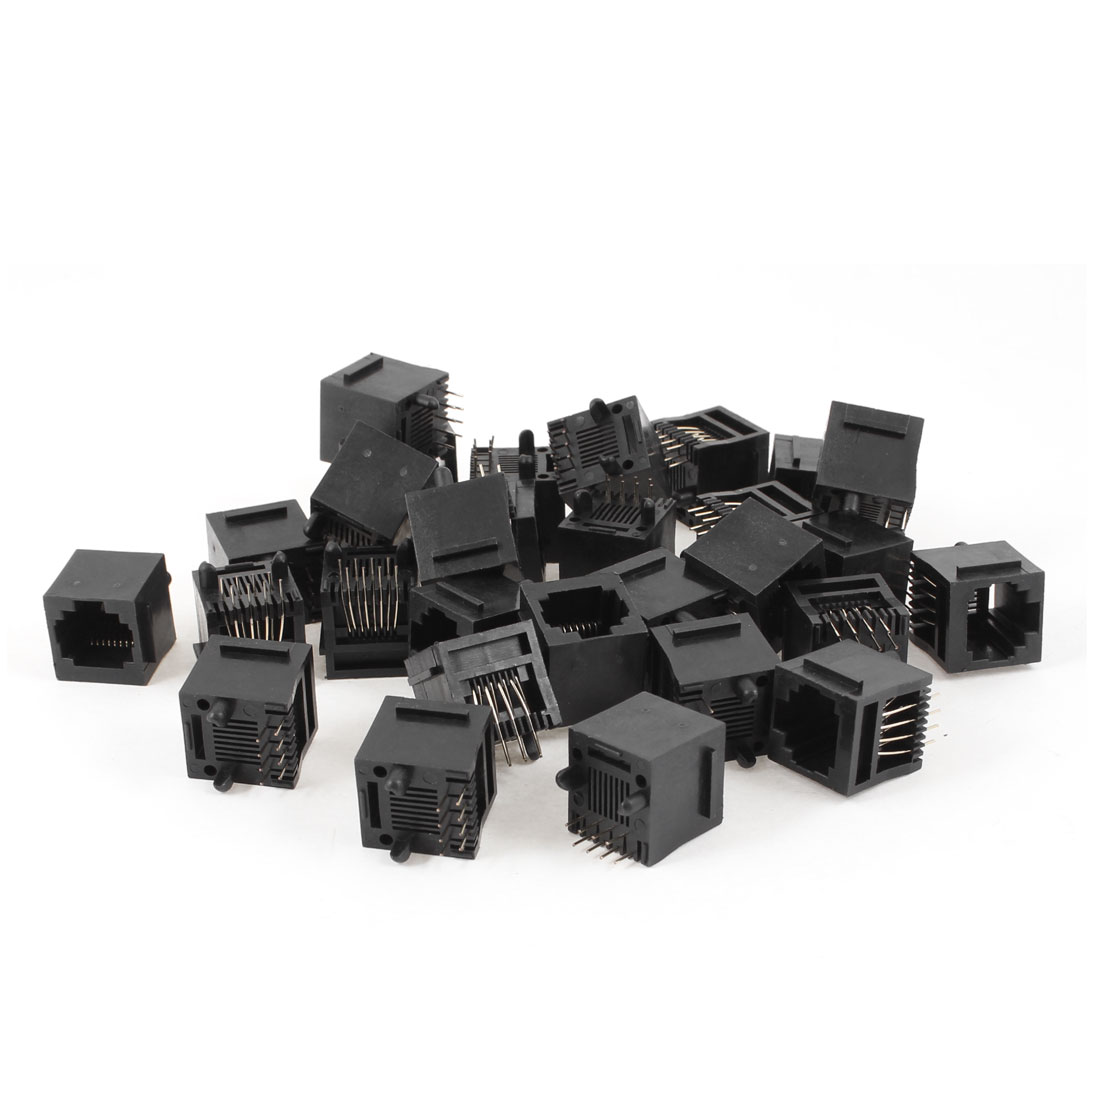 30 Pcs Unshielded RJ45 8P8C Network Modular PCB Connector Jacks Black